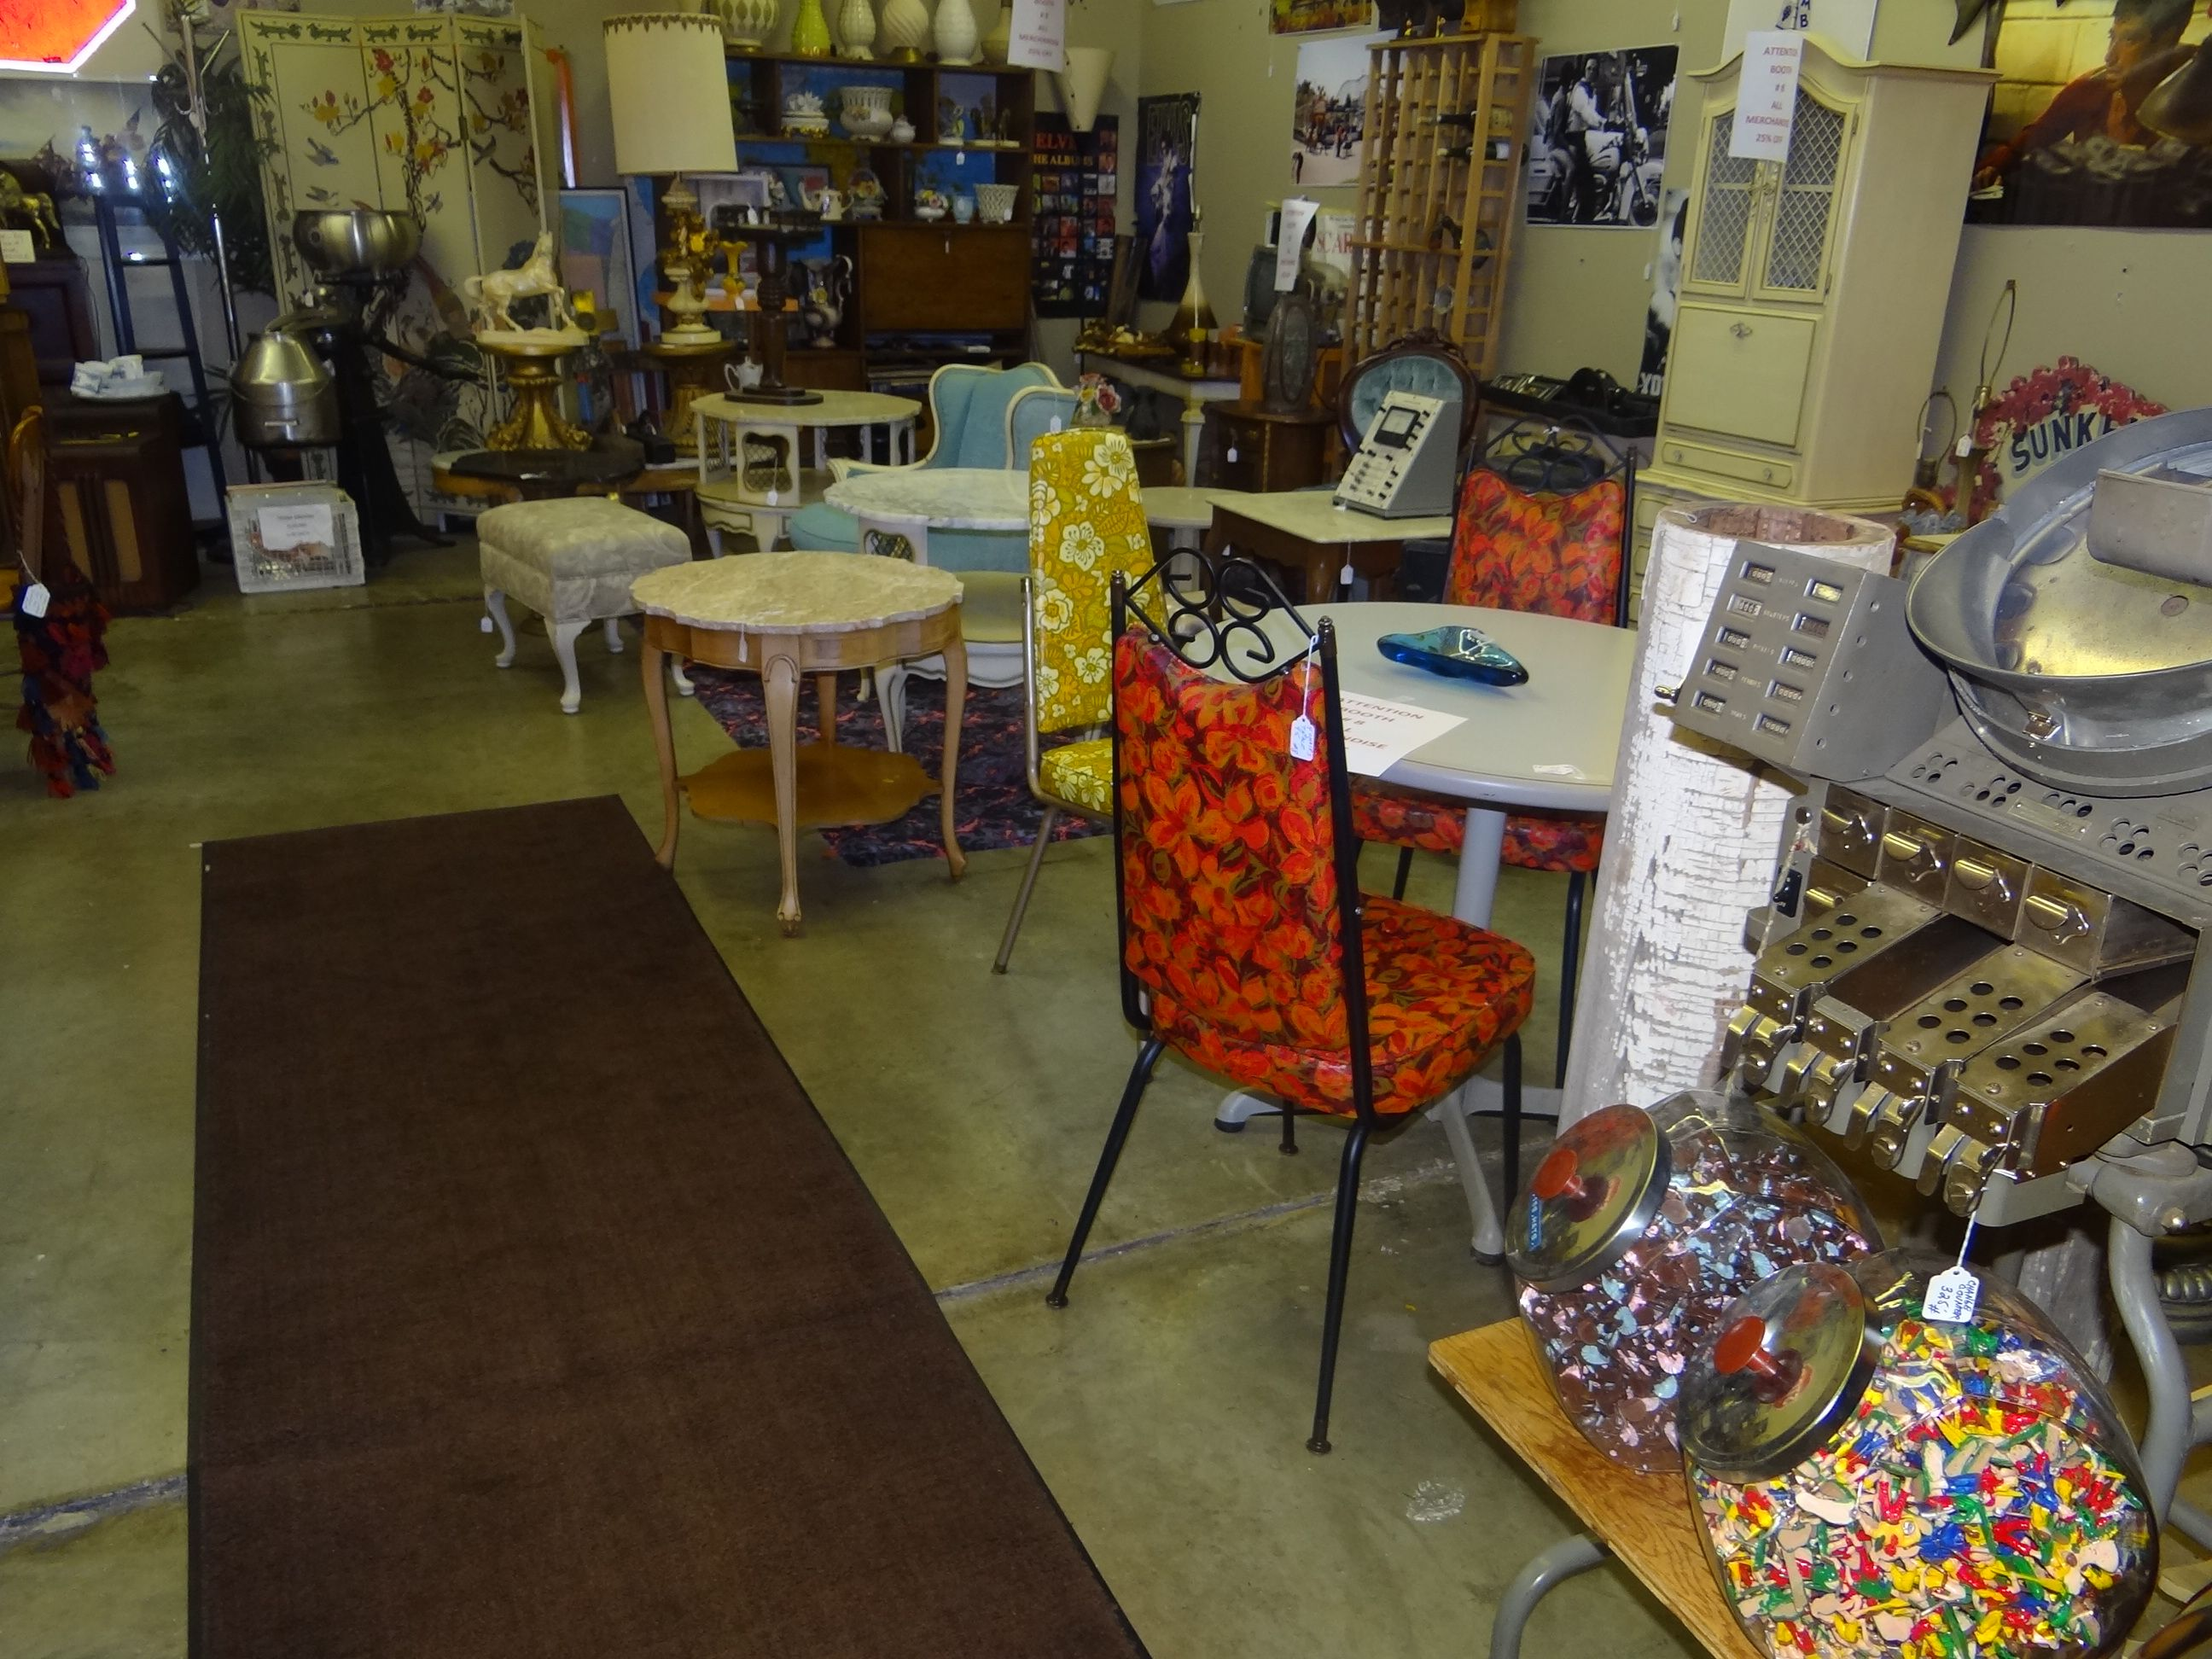 At The Riverside Centre Antique Mall There S So Much To Chose From You Can Find Anything Mid Century Modern French Flea Market Chic